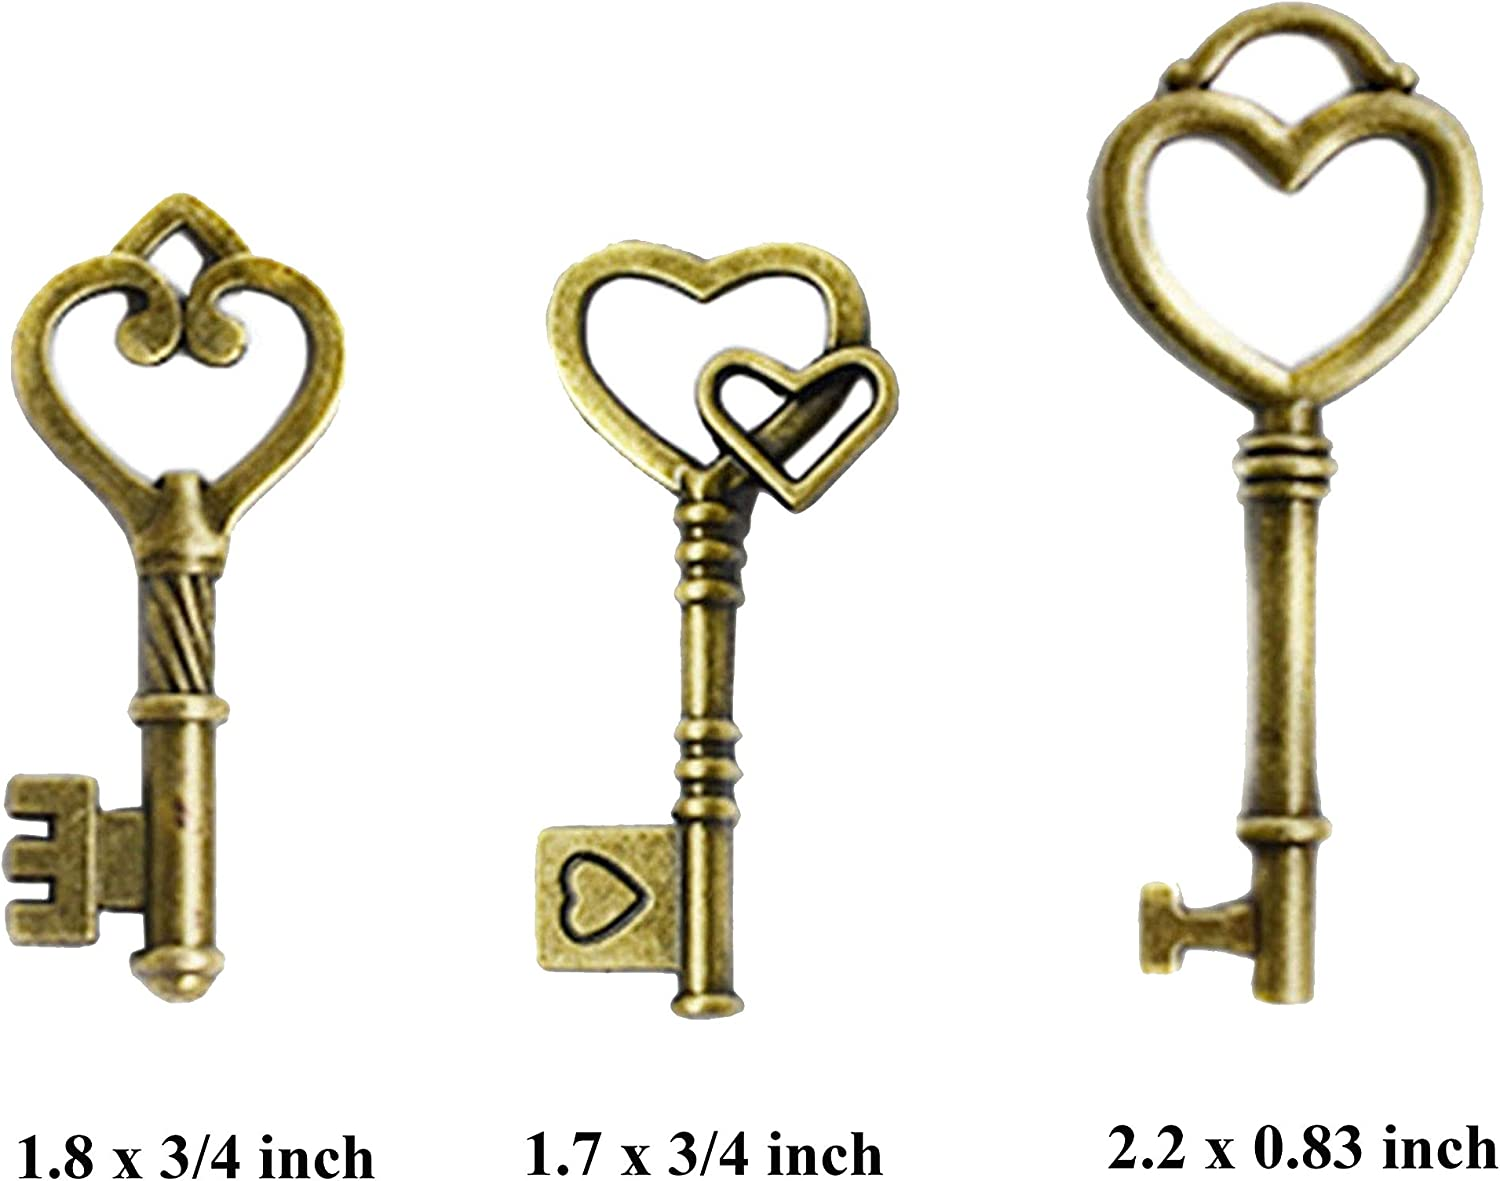 Lot 3--50 old look keys antique vintage style  3 colors jewelry craft wedding